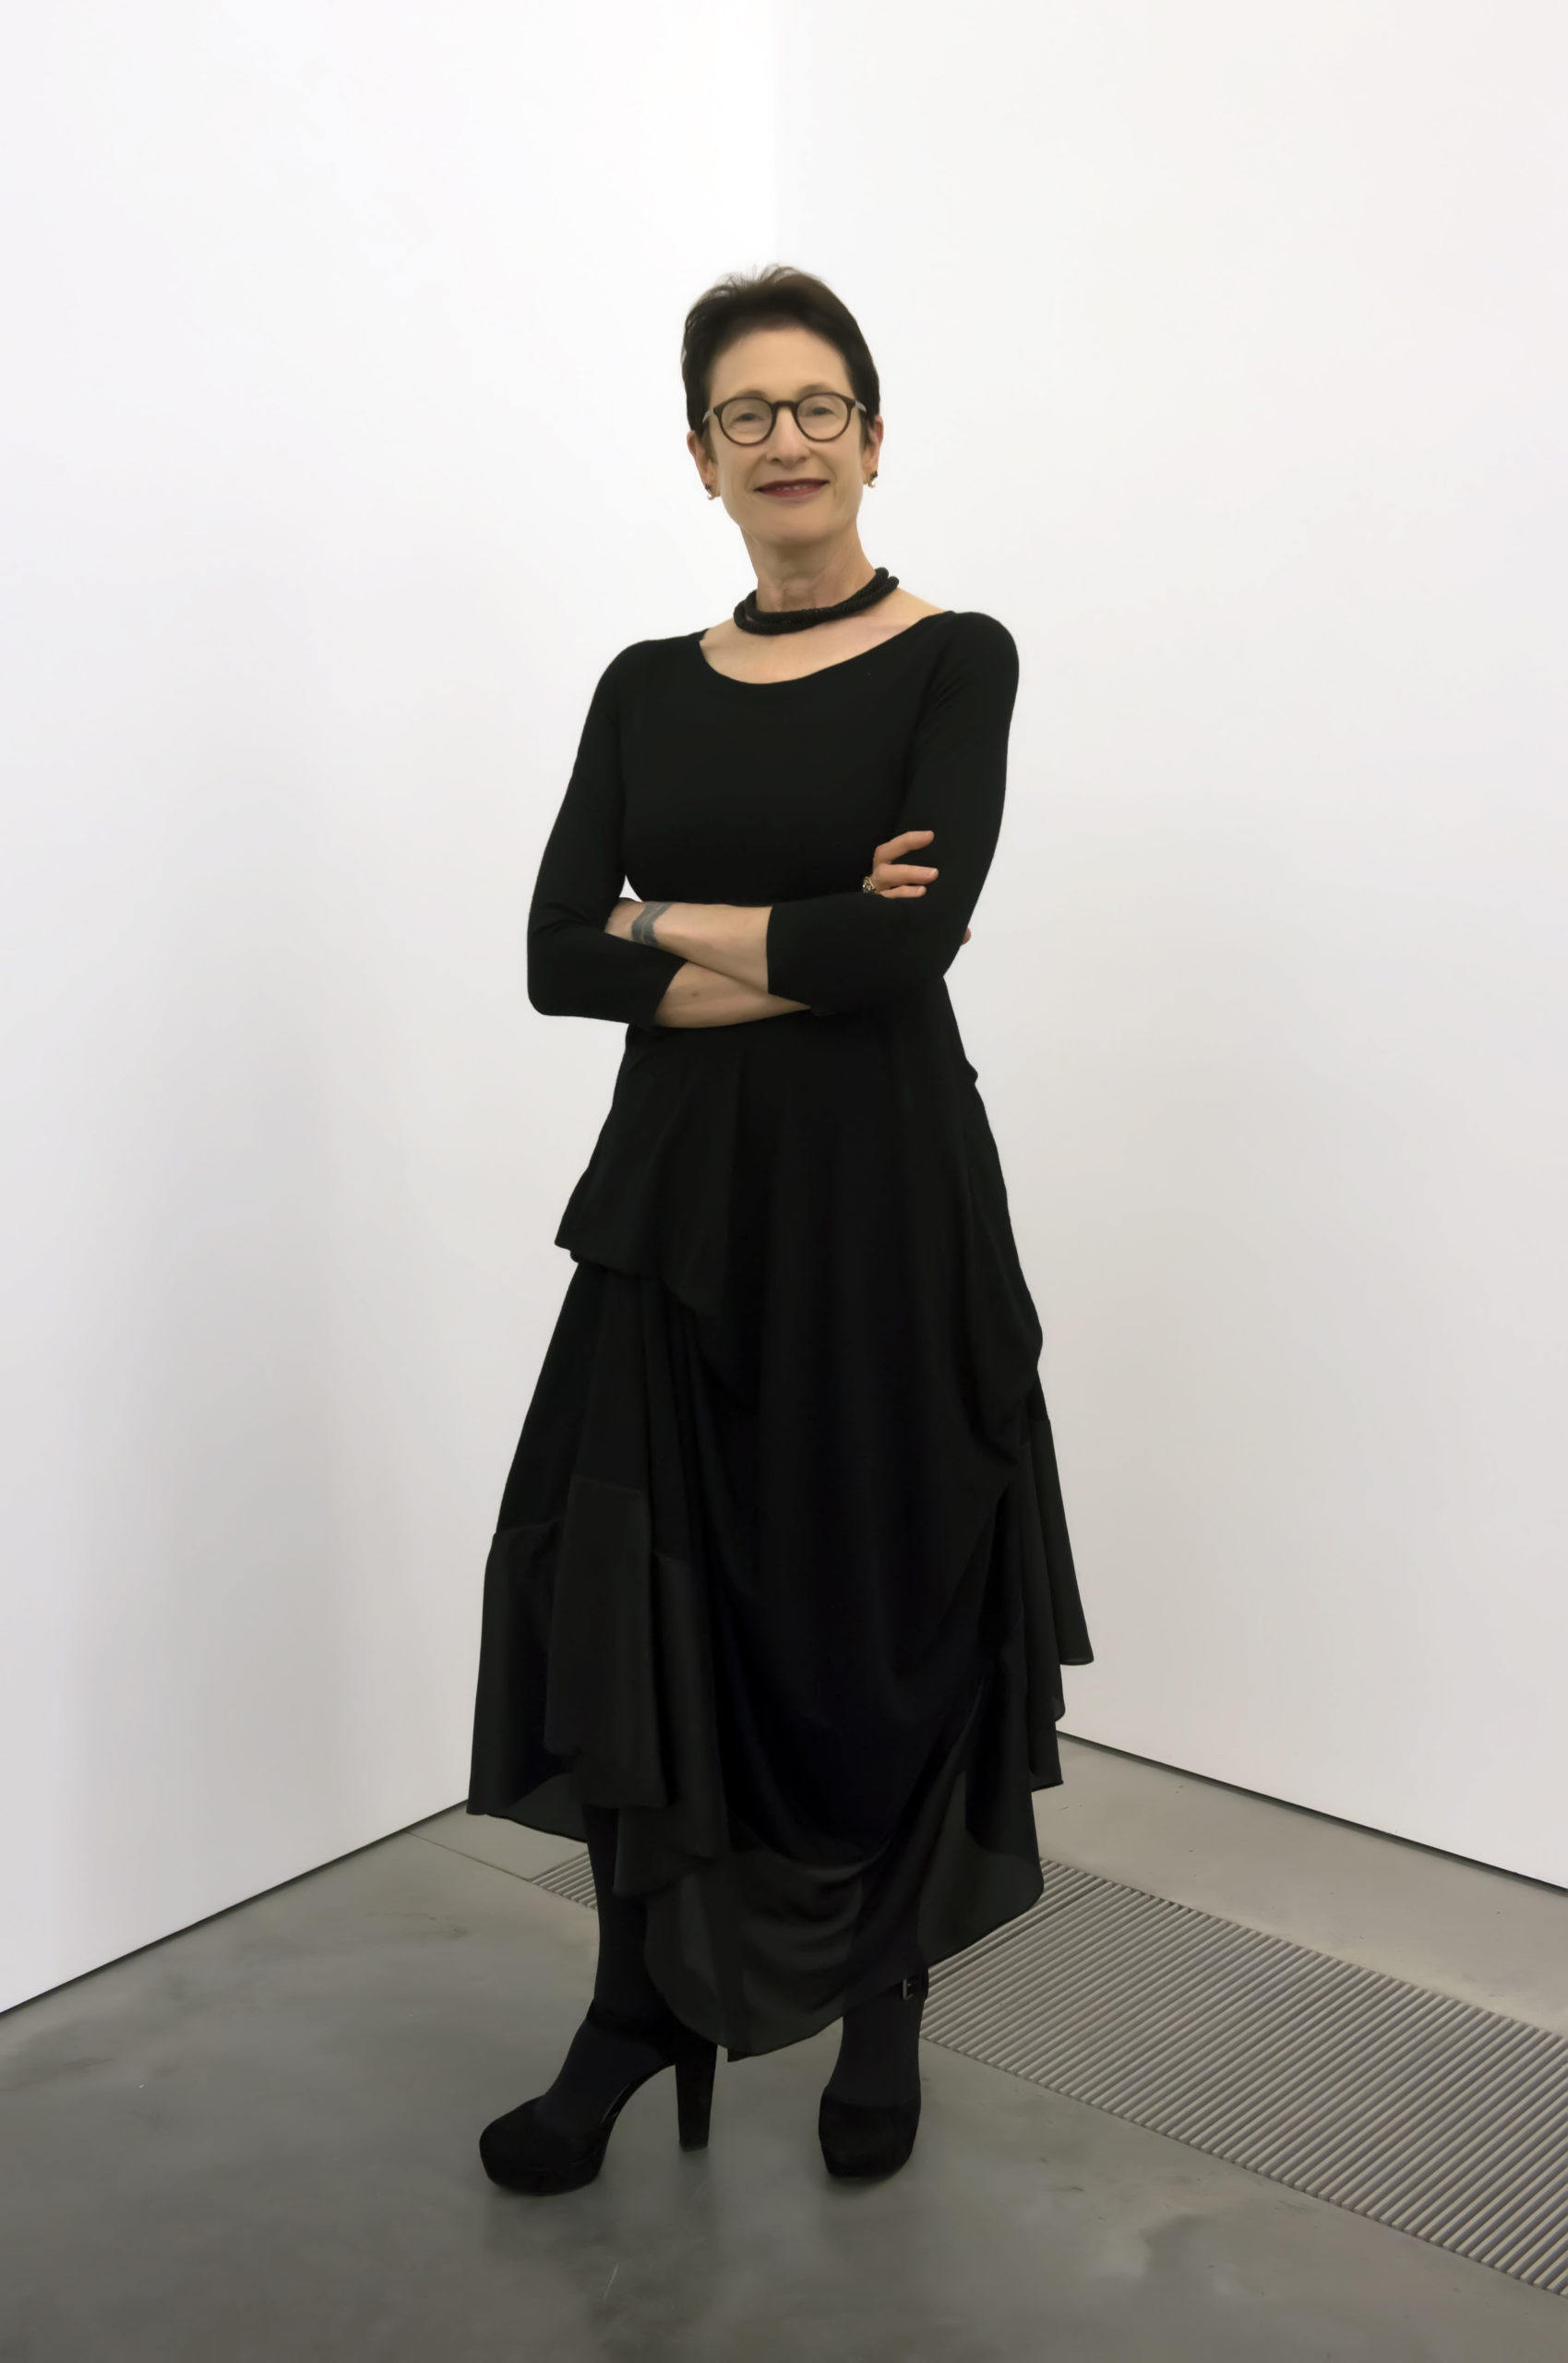 Terrie Sultan is stepping down as director of the Parrish Art Museum.